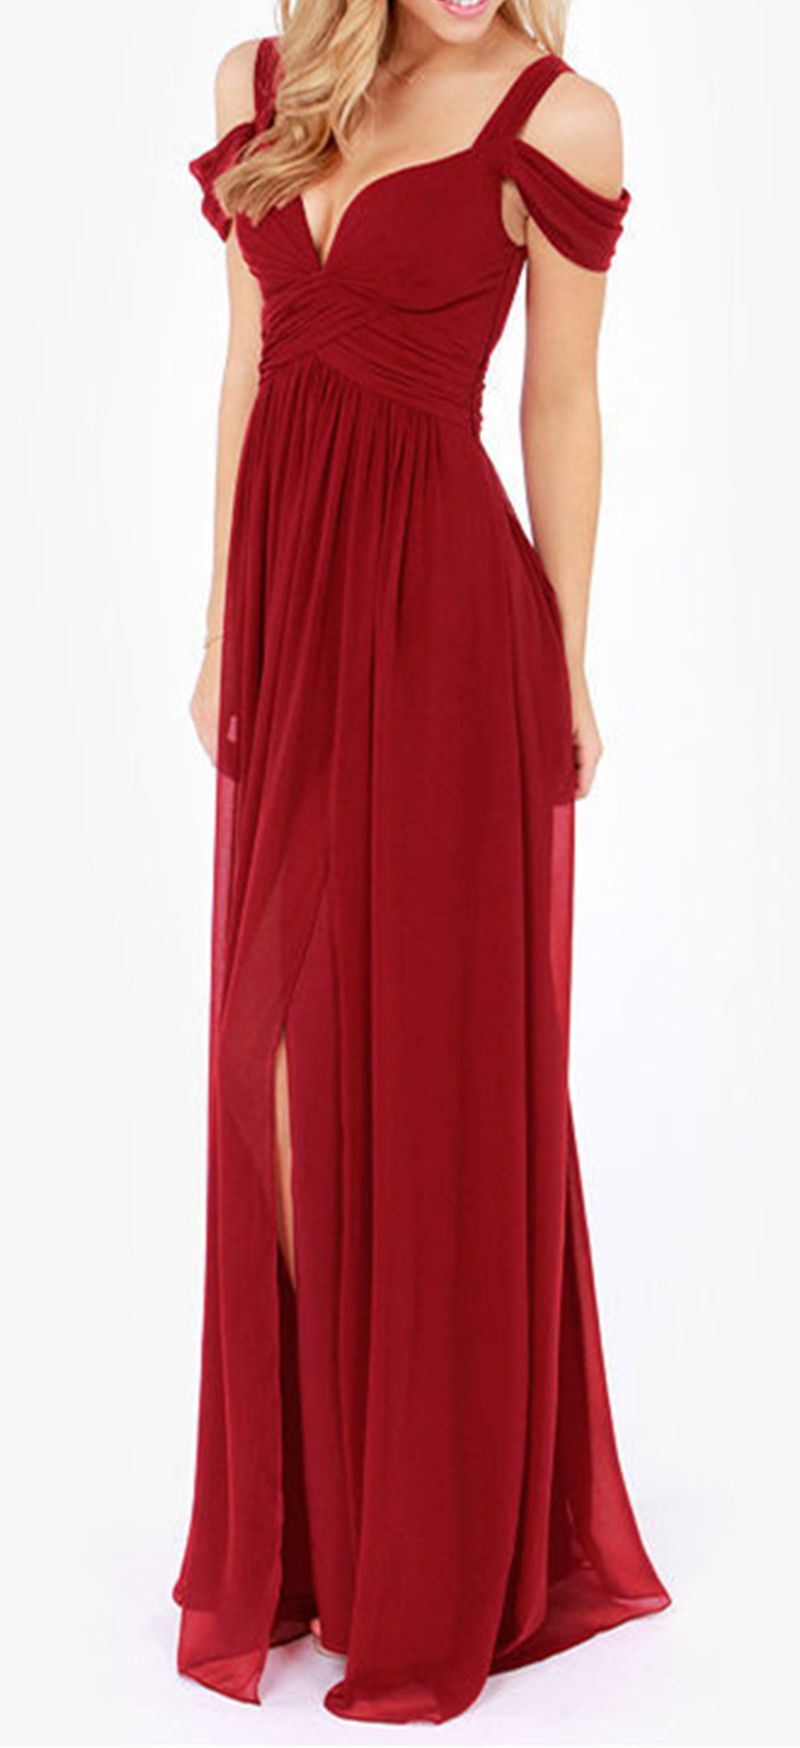 This bold off shoulder wine red vneck maxi dress is a classic gown